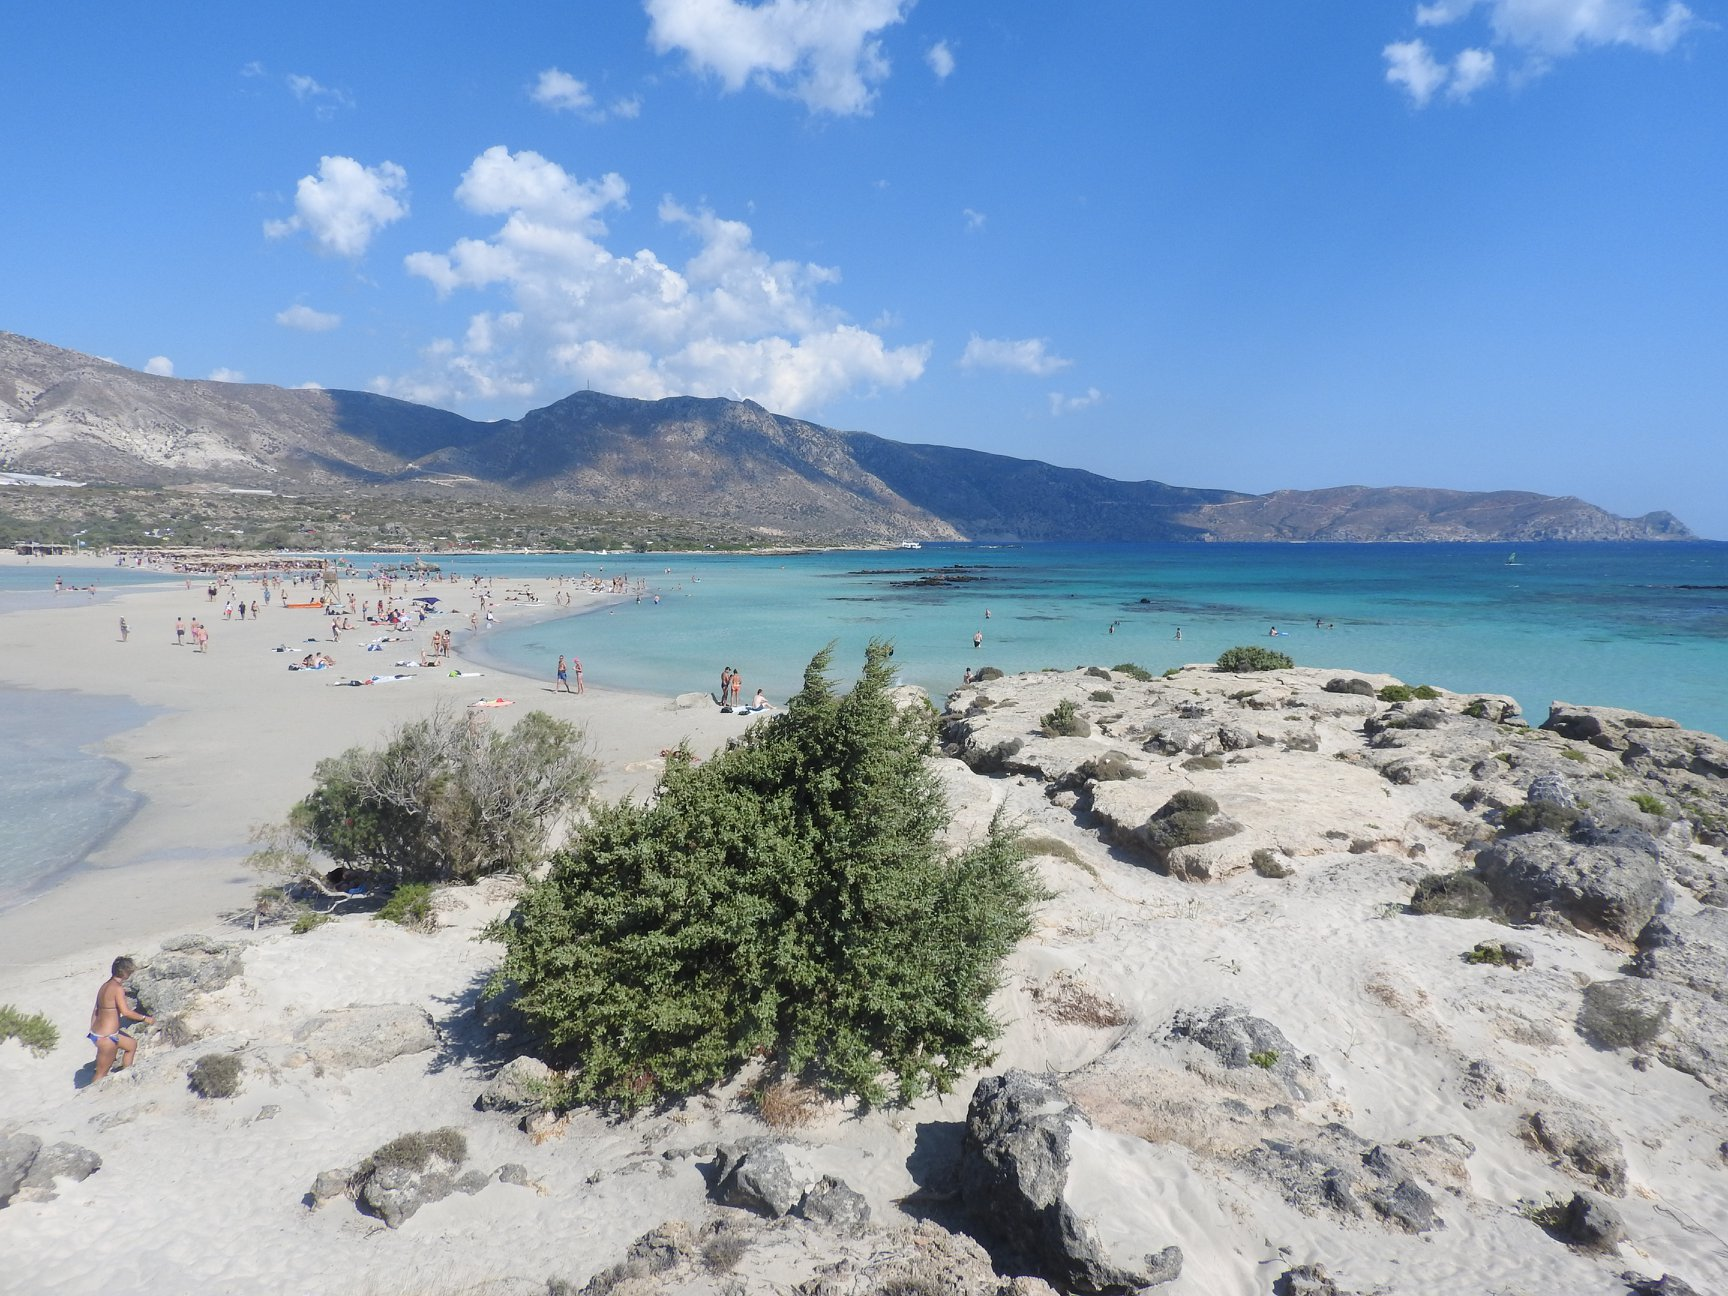 Elafonissi is the most beautiful beach in Crete